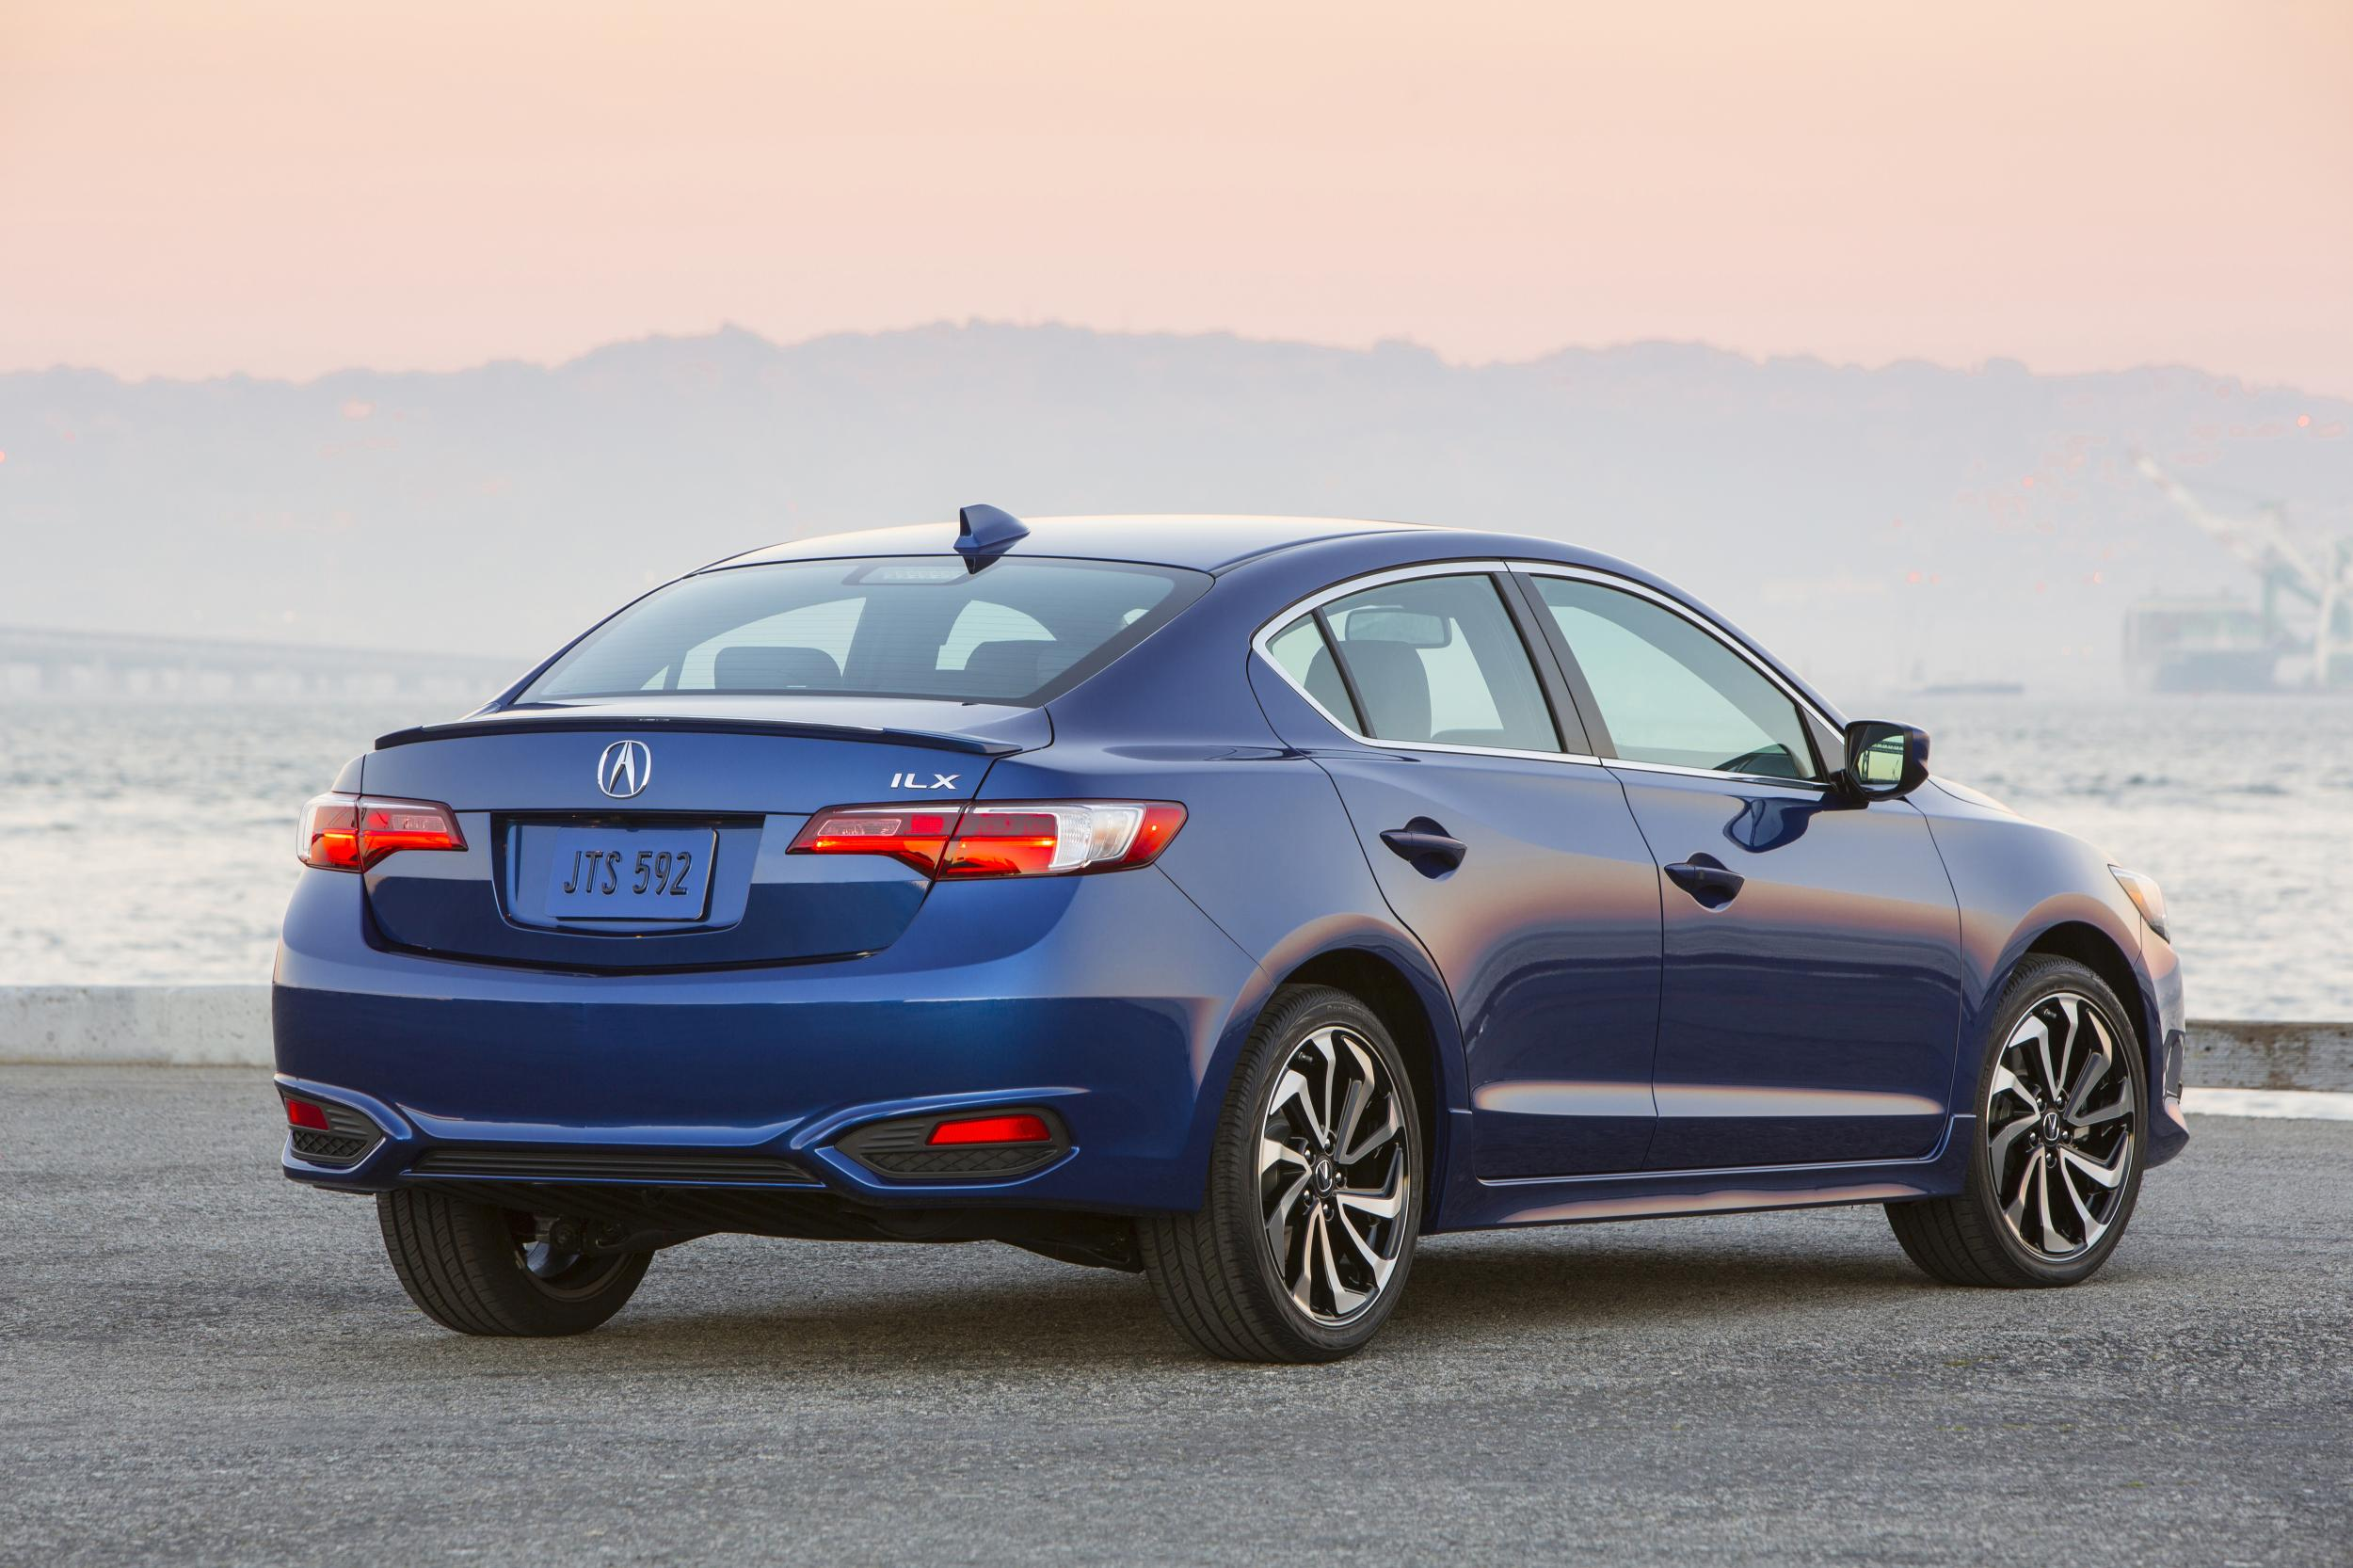 news auto ilx acura market on released the price